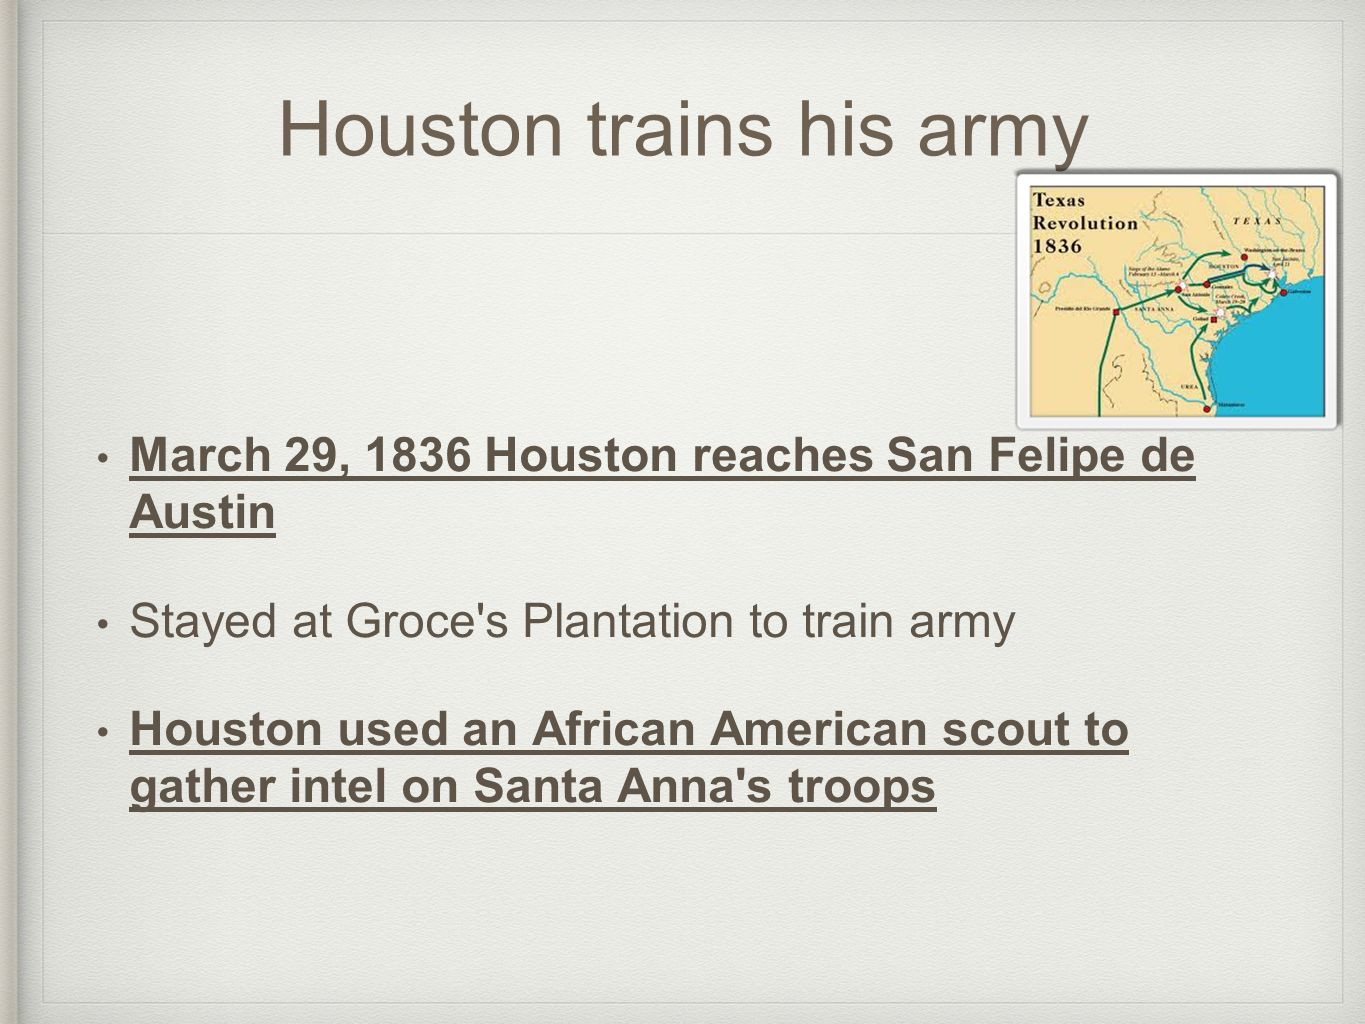 Houston trains his army March 29, 1836 Houston reaches San Felipe de Austin Stayed at Groce s Plantation to train army Houston used an African American scout to gather intel on Santa Anna s troops